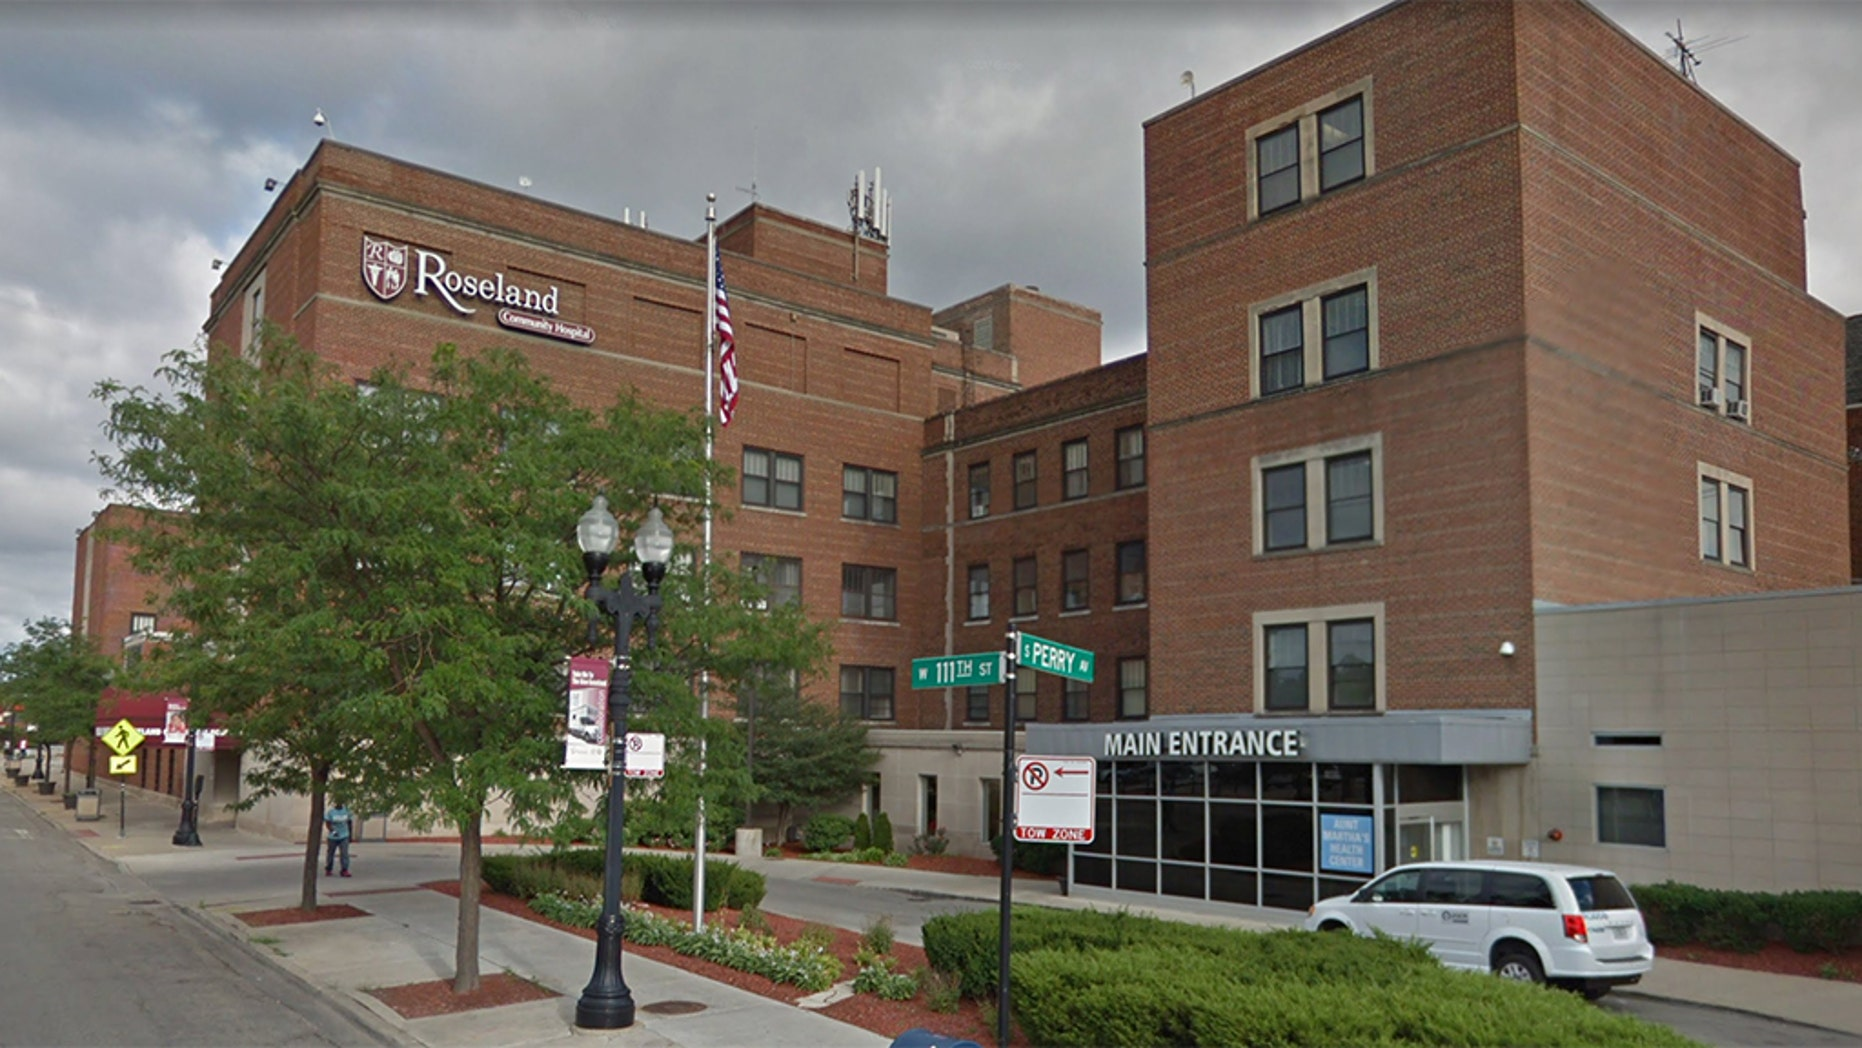 A 19-year-old man in Chicago who had been too drunk to notice he had been shot in the chest the night before showed up to the Roseland Community Hospital.